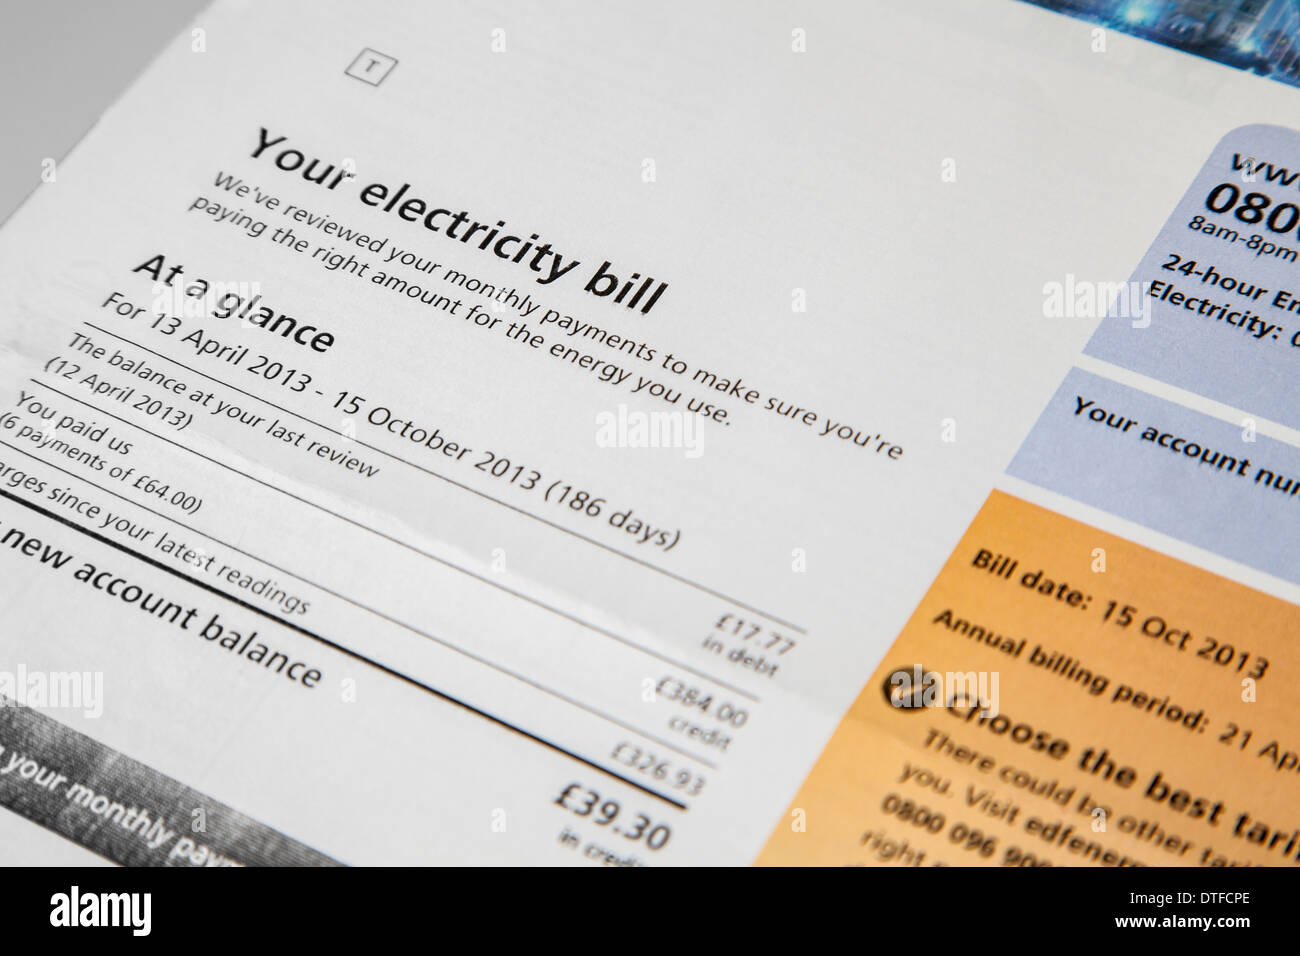 electricity bill stock photos electricity bill stock. Black Bedroom Furniture Sets. Home Design Ideas